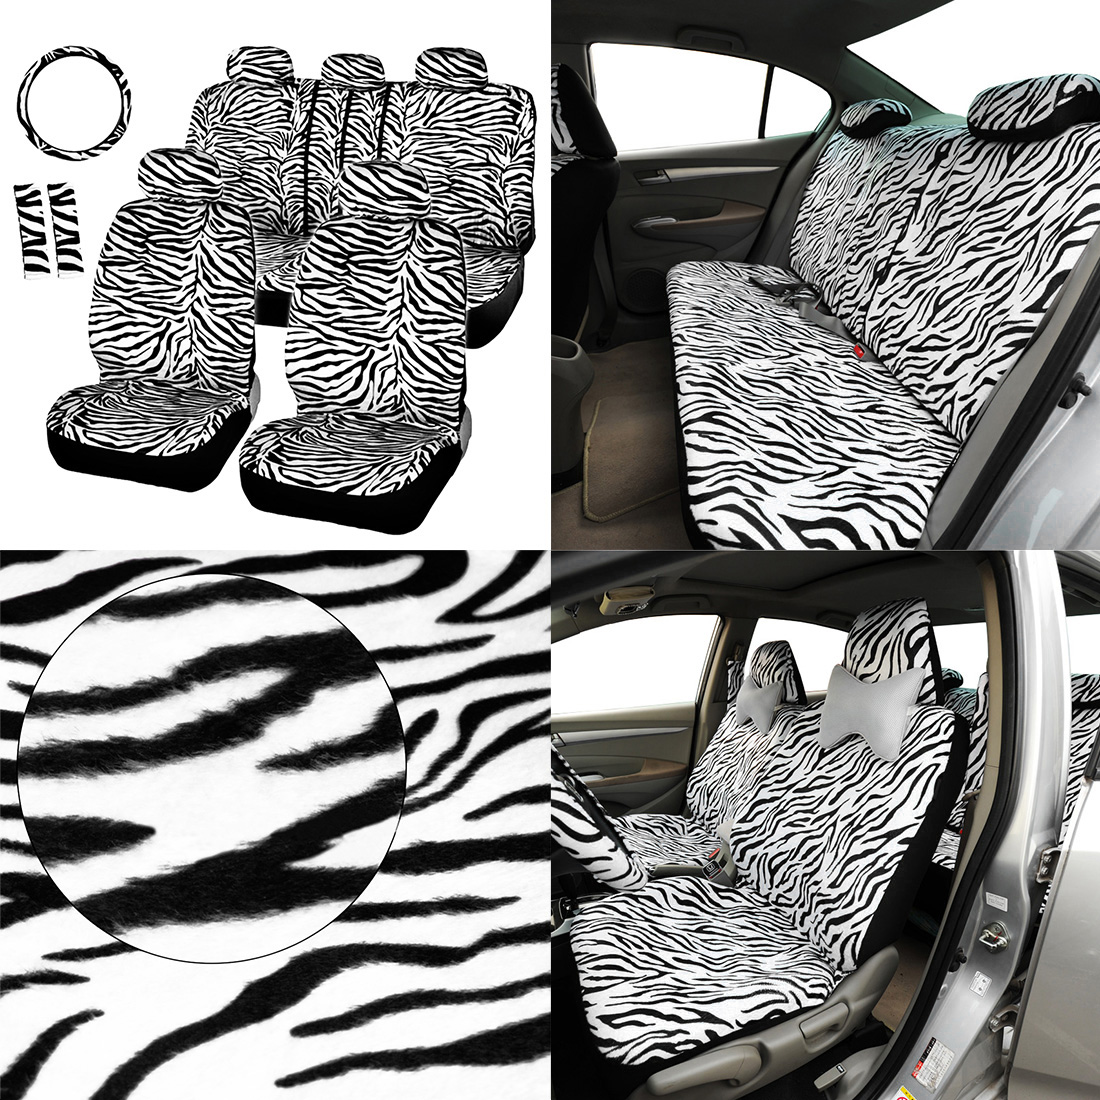 Dewtreetali Seat Cover Protector Car Steering Wheel Cover Shoulder Pad Car-styling Luxury Zebra Seat Covers Universal Fit Most dewtreetali universal automoblies seat cover four seaons car seat protector full set car accessories car styling for vw bmw audi